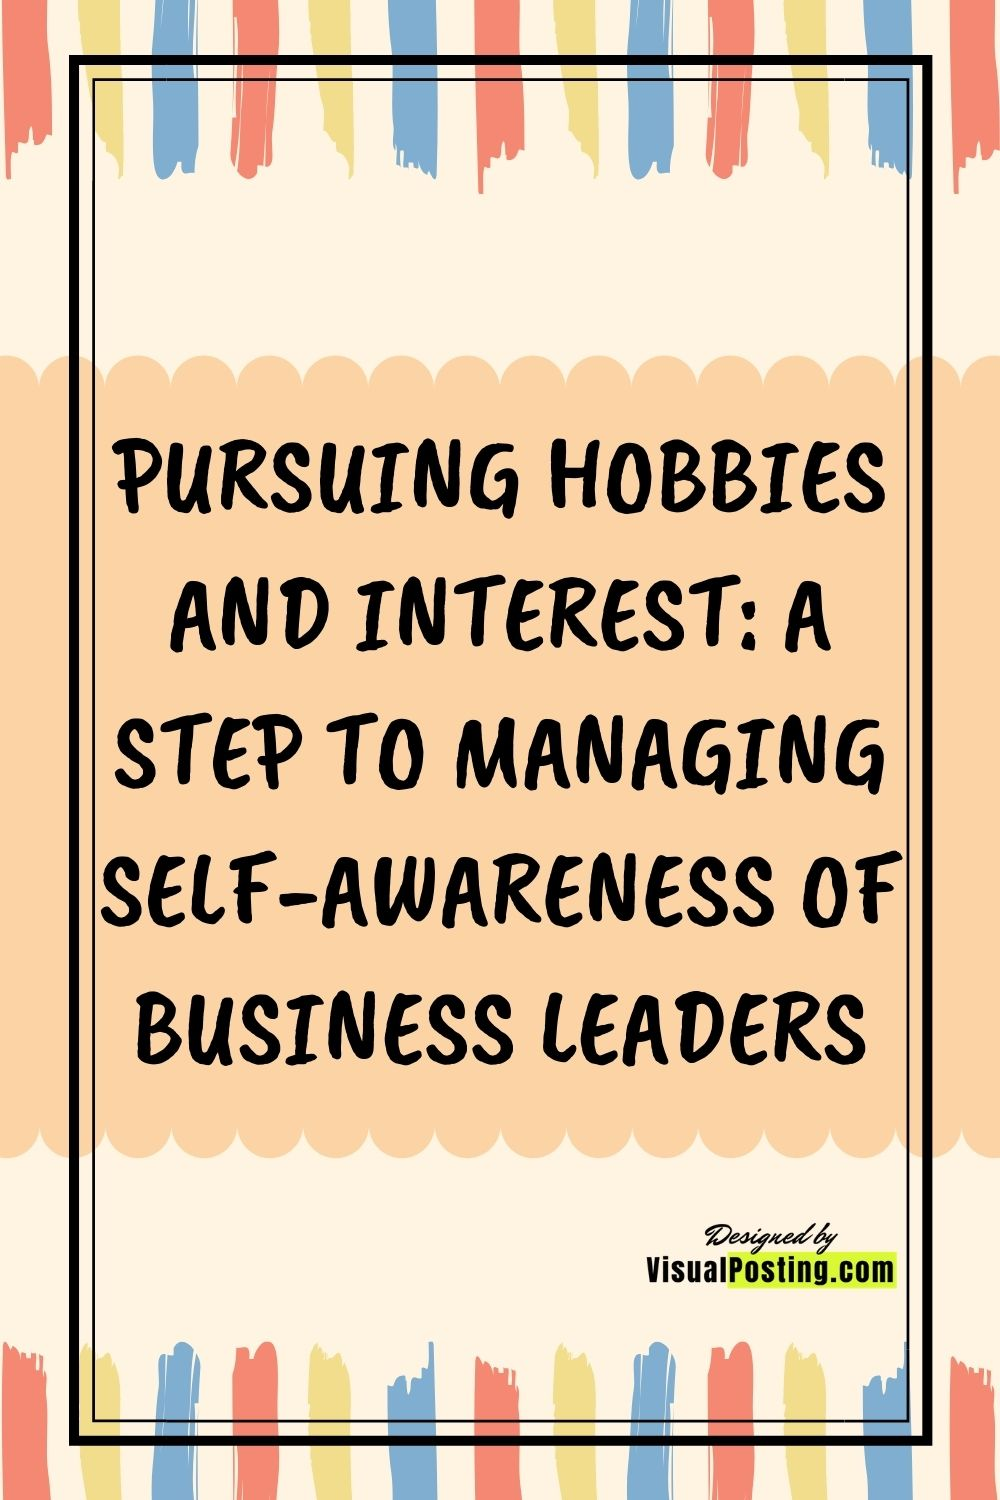 PURSUING HOBBIES AND INTEREST: A STEP TO MANAGING SELF-AWARENESS OF BUSINESS LEADERS.jpg